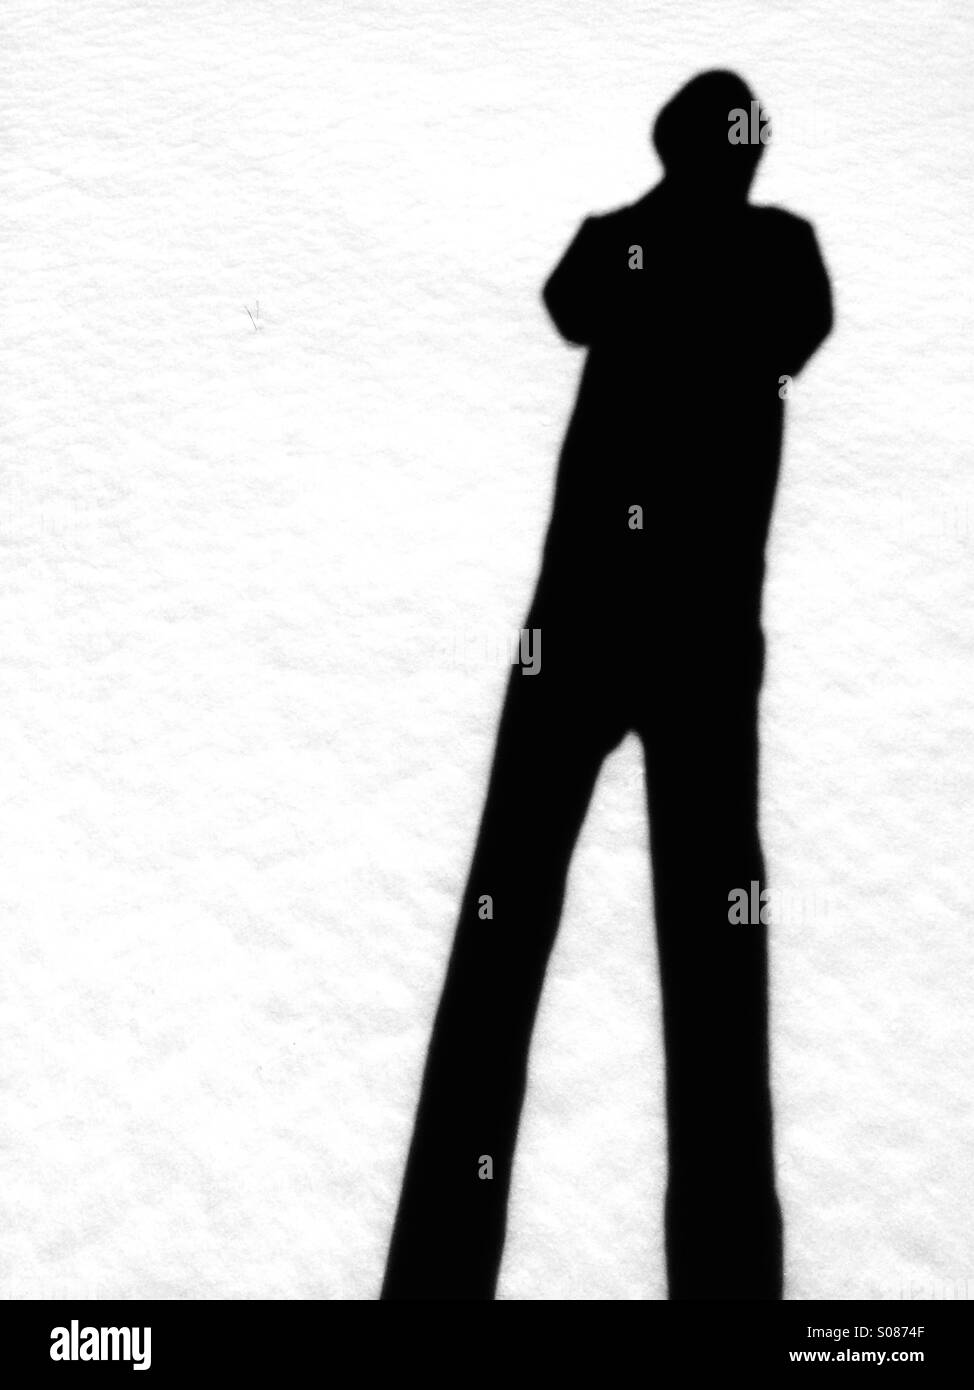 Shadow of a man against white snow. - Stock Image